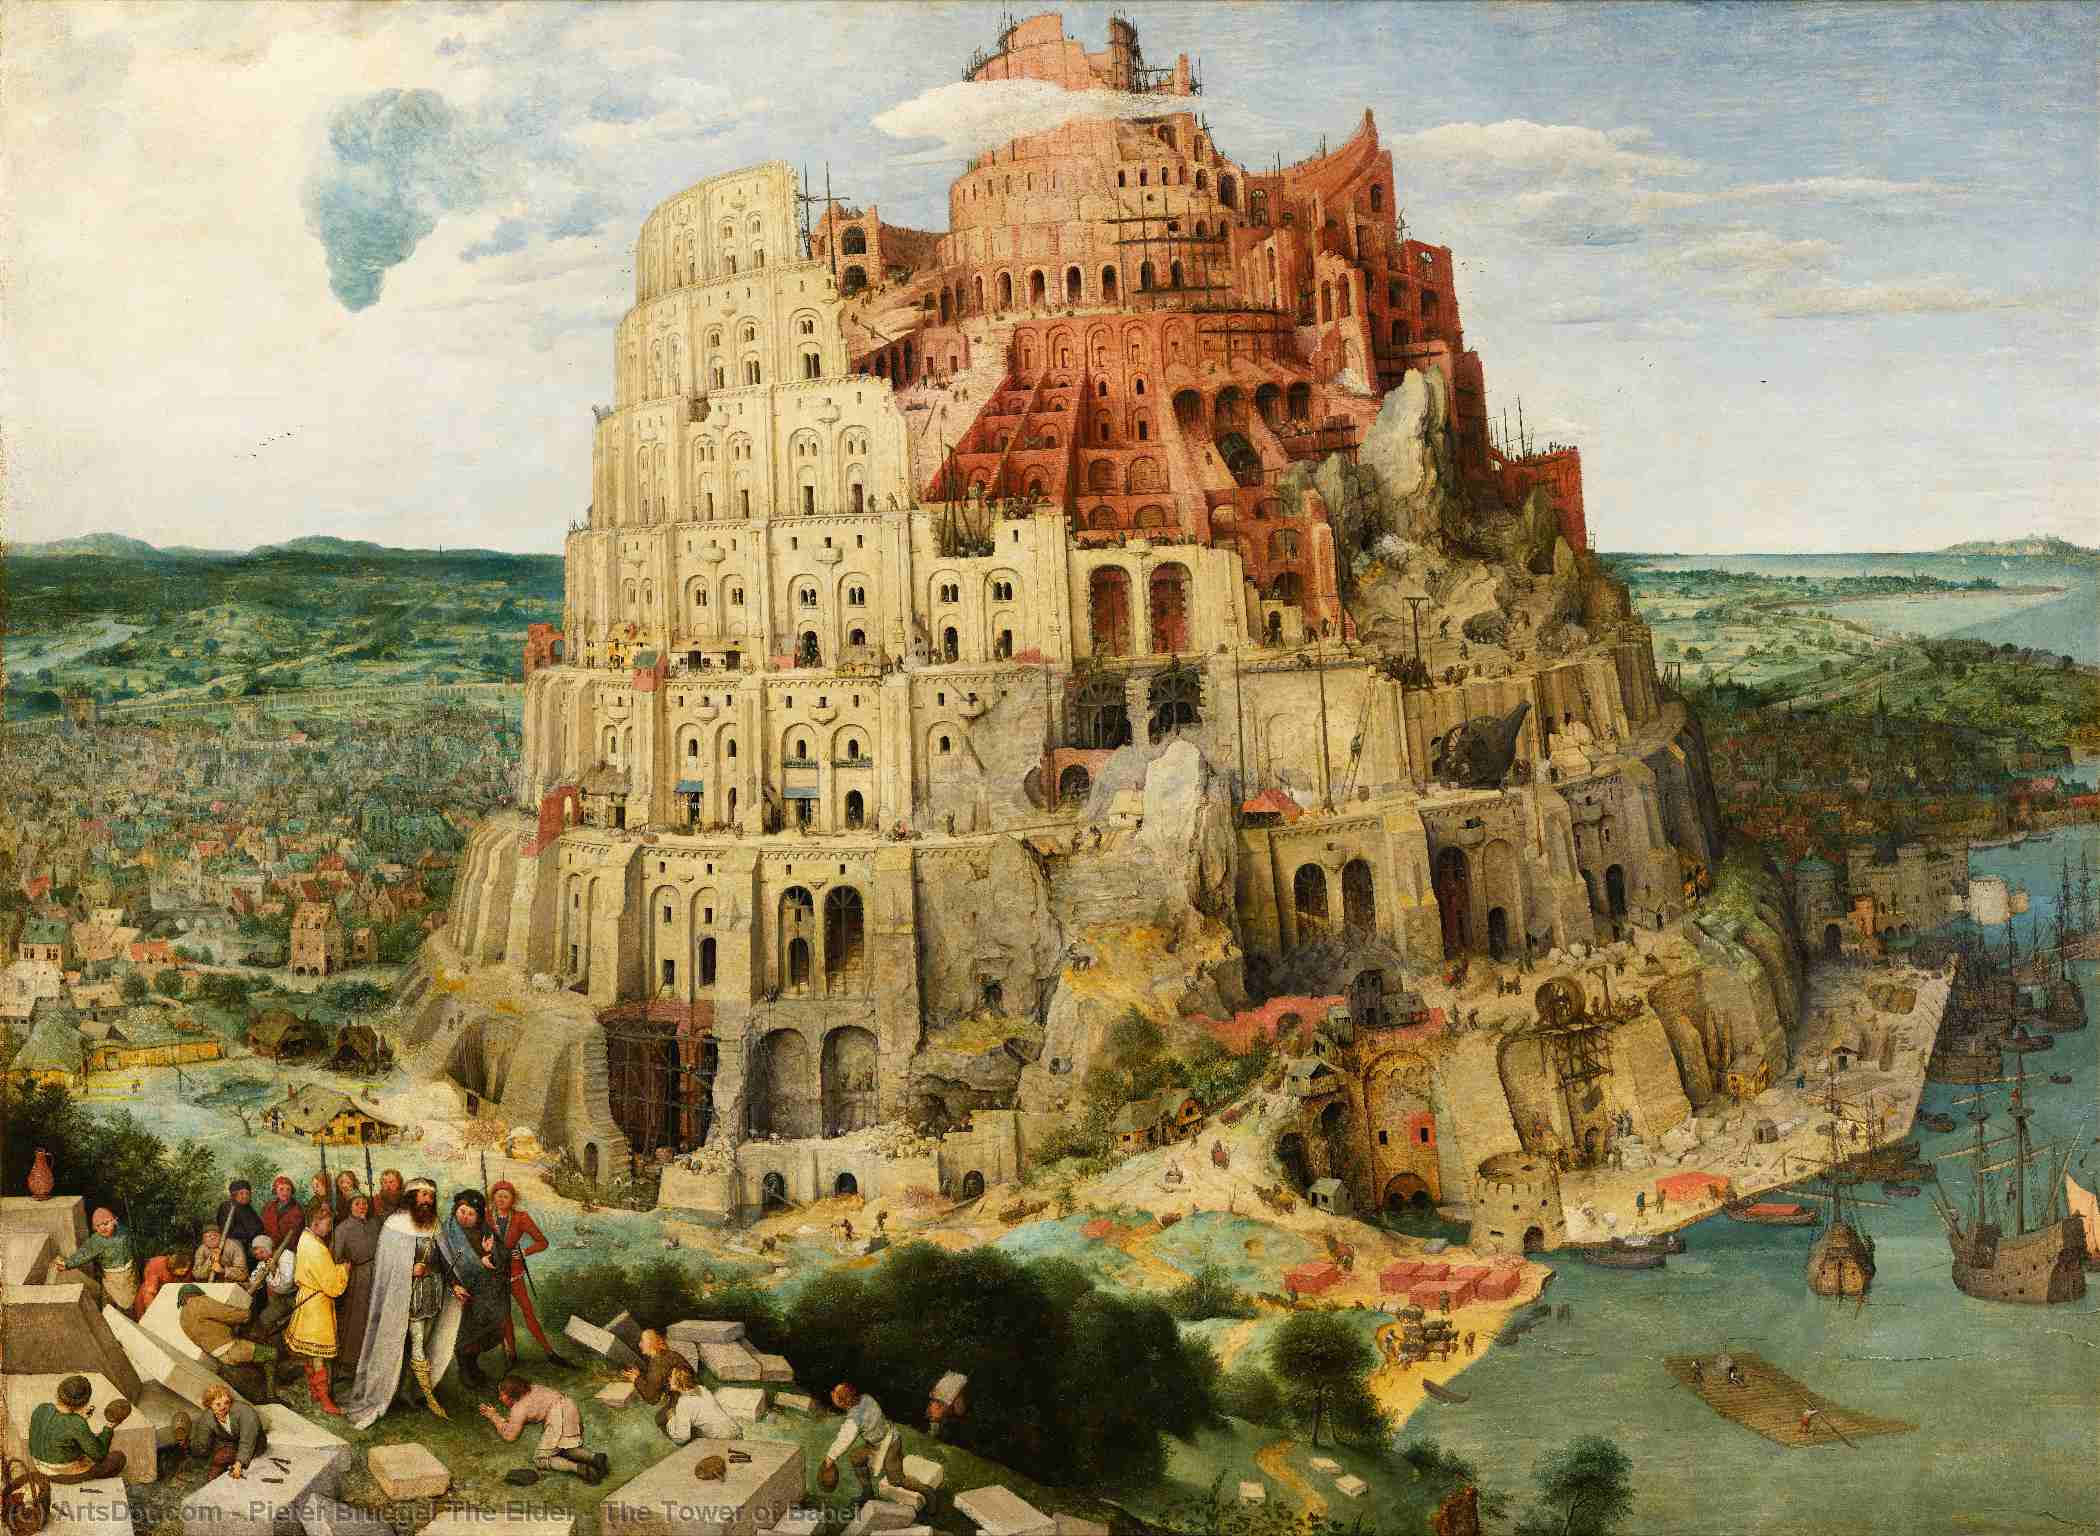 Wikioo.org - The Encyclopedia of Fine Arts - Painting, Artwork by Pieter Bruegel The Elder - The Tower of Babel